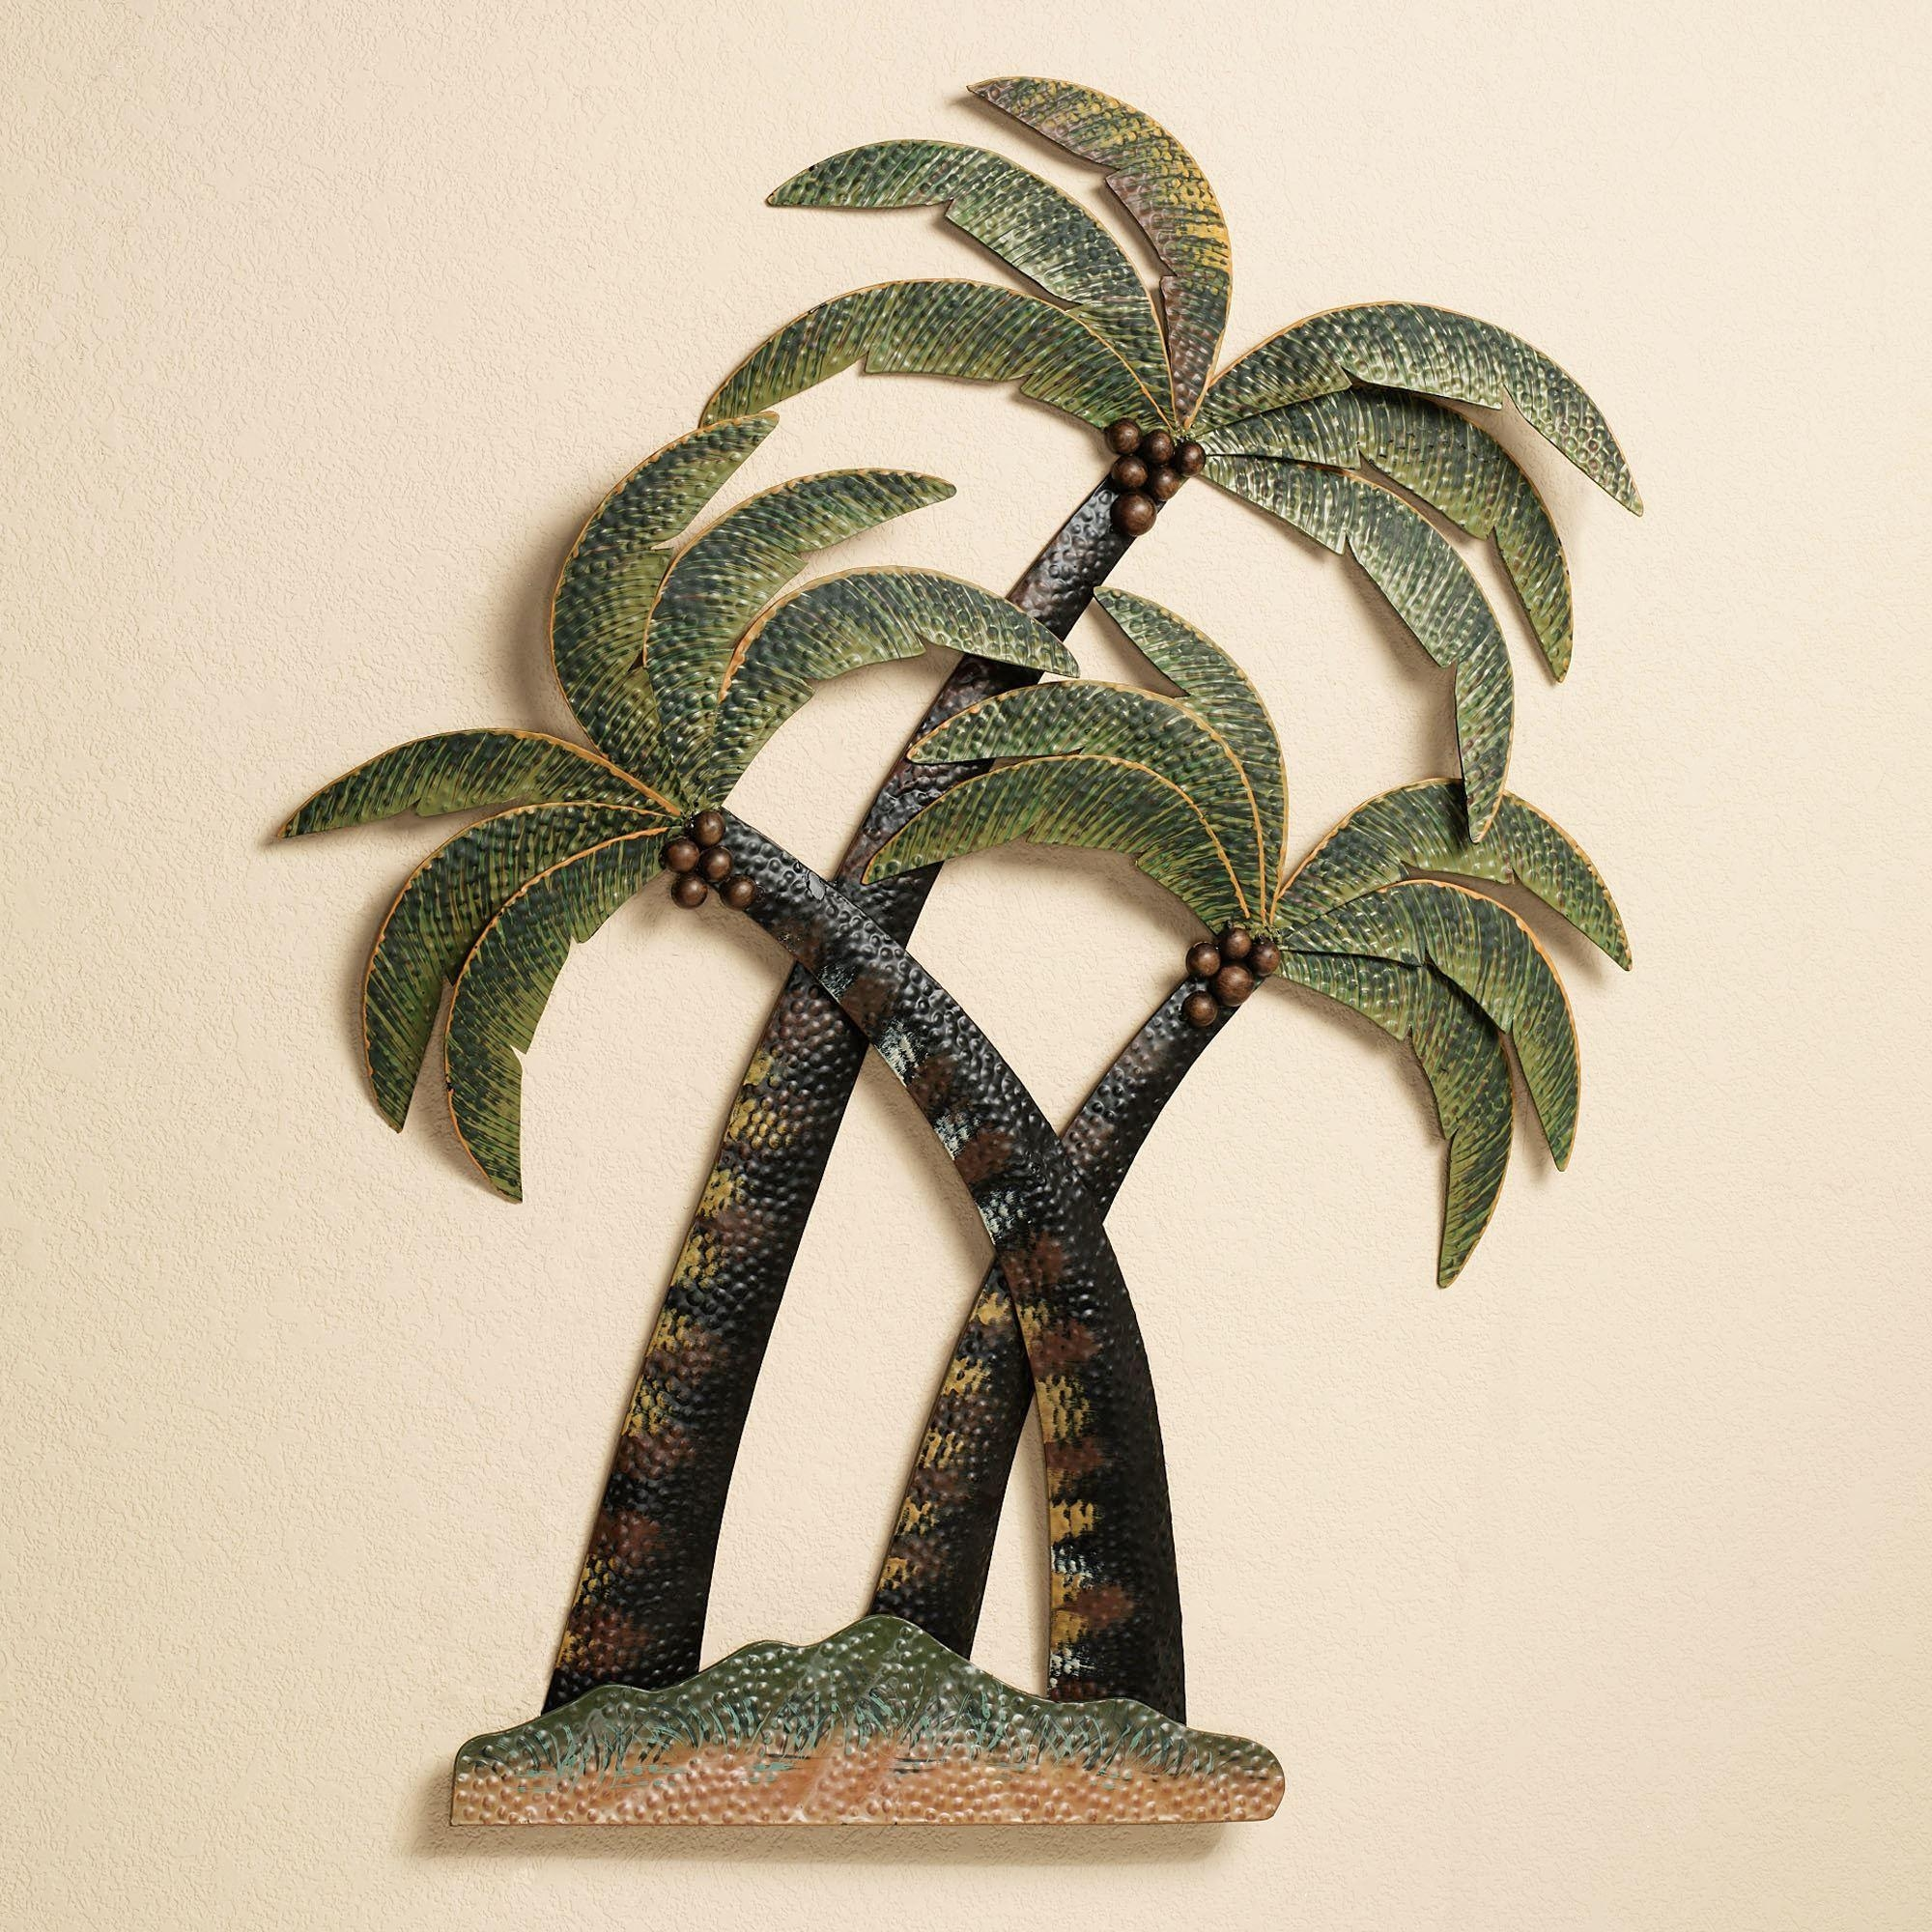 Coco Palm Tree Metal Wall Sculpture Regarding Palm Tree Metal Art (Image 5 of 20)